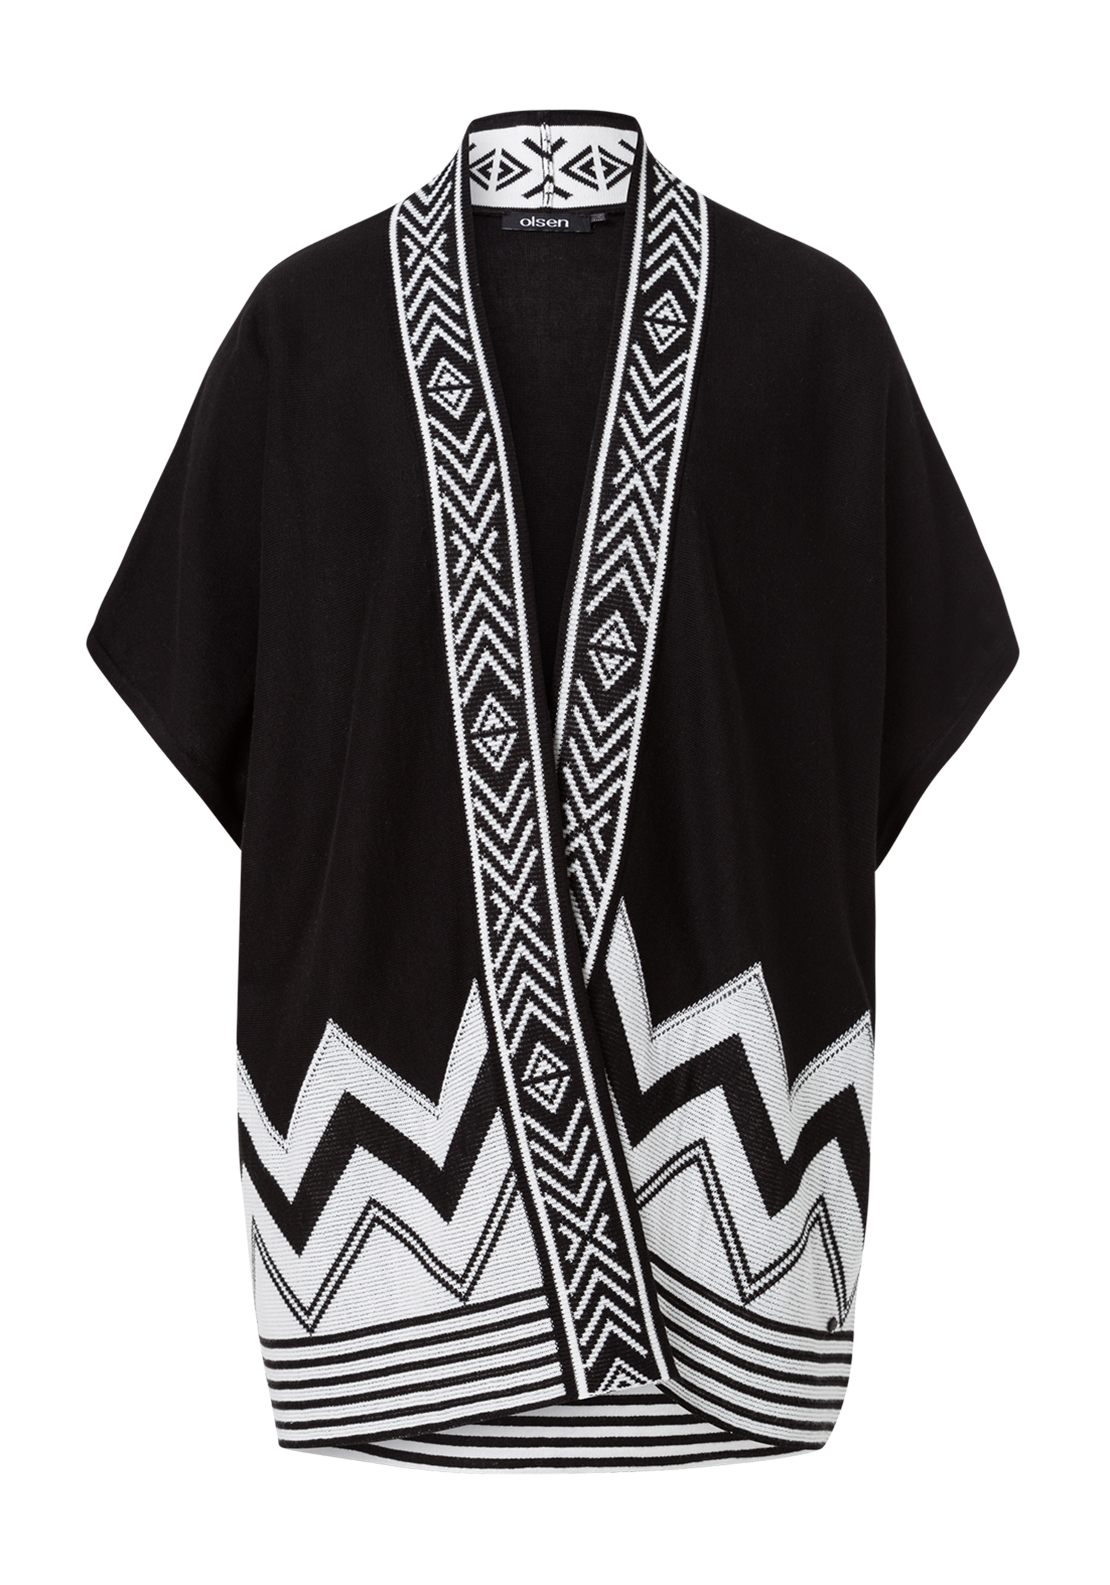 Olsen Chevron Print Short Sleeve Long Cardigan, Black and White